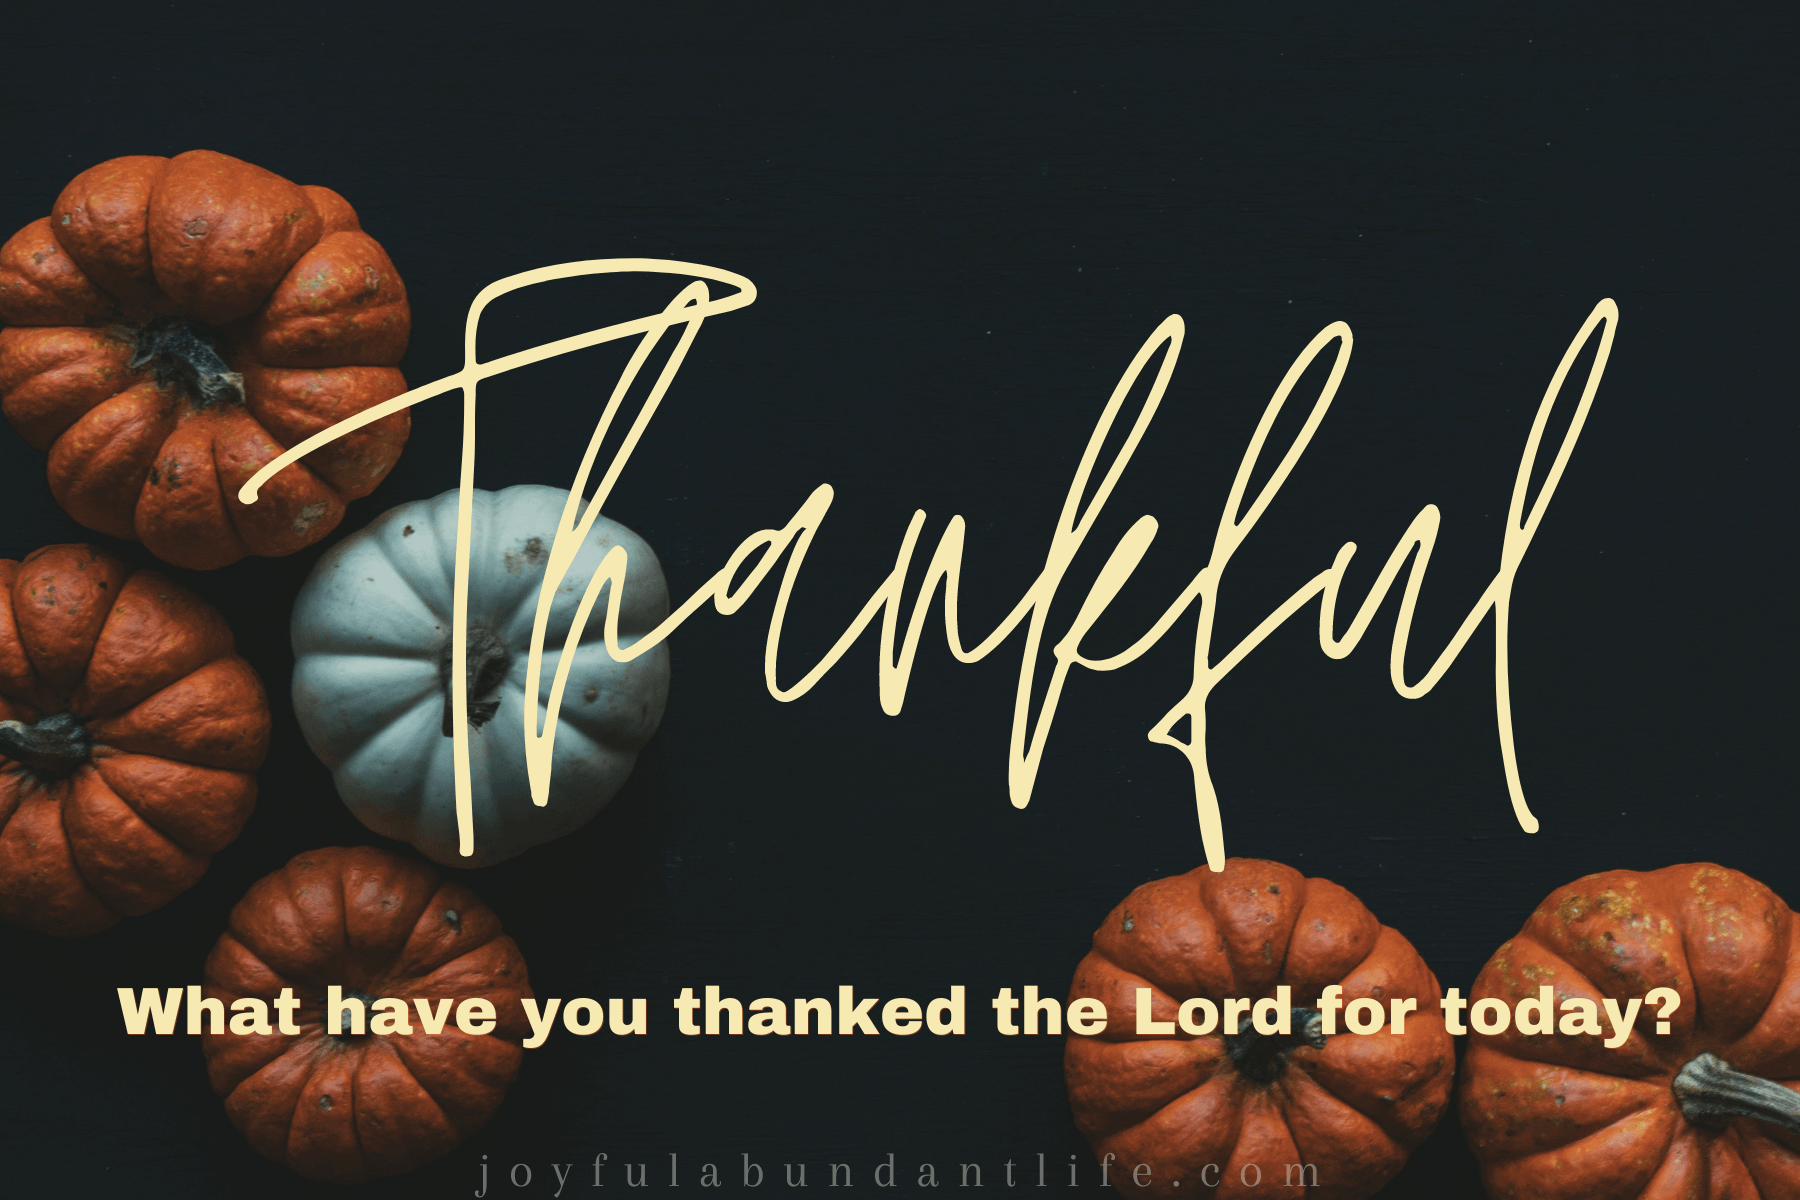 Are you thankful? I am beloved of God